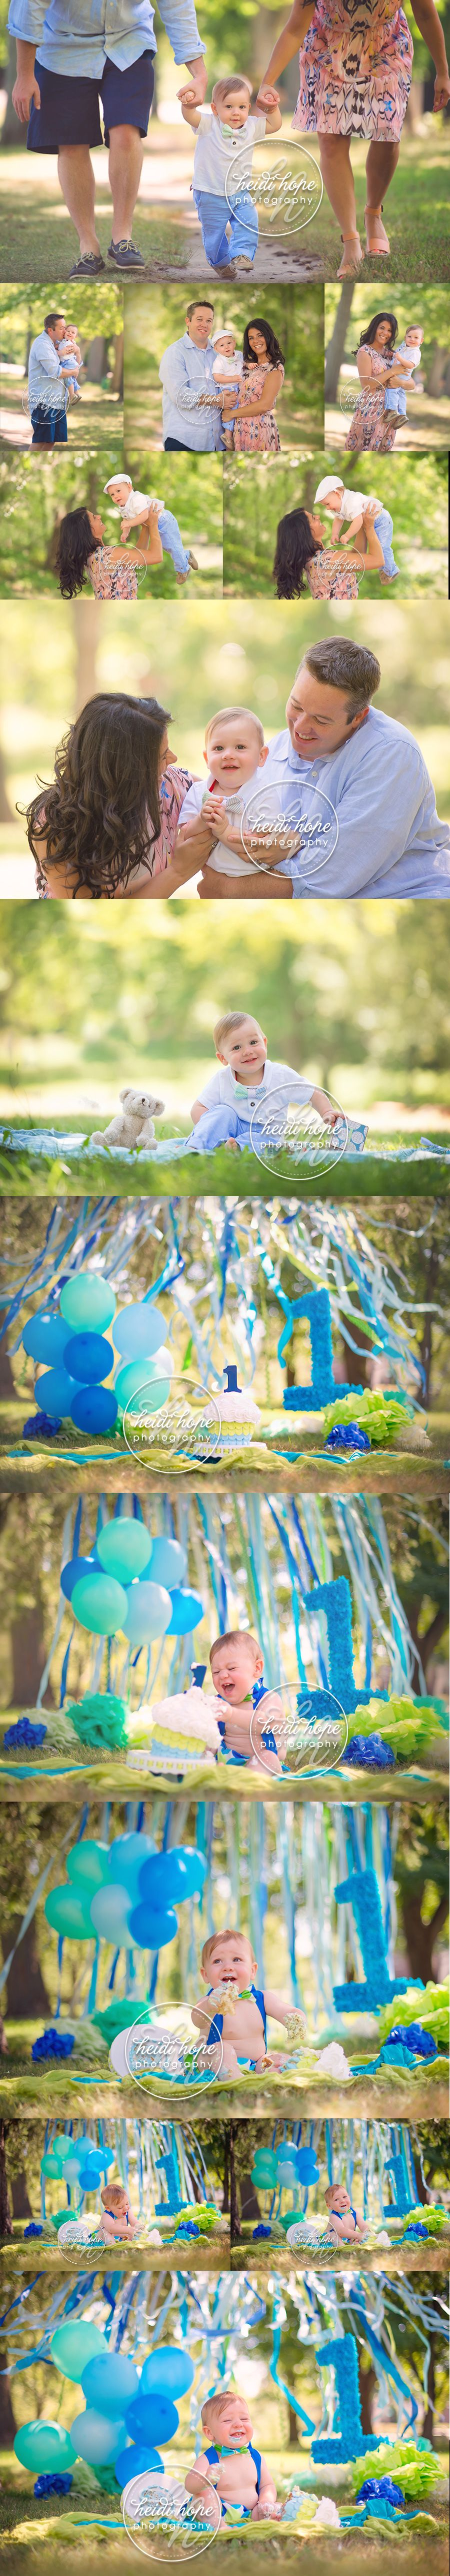 a-blue-and-green-classic-cakesmash-outdoors-at-the-park-by-rhode-island-birthday-photographer